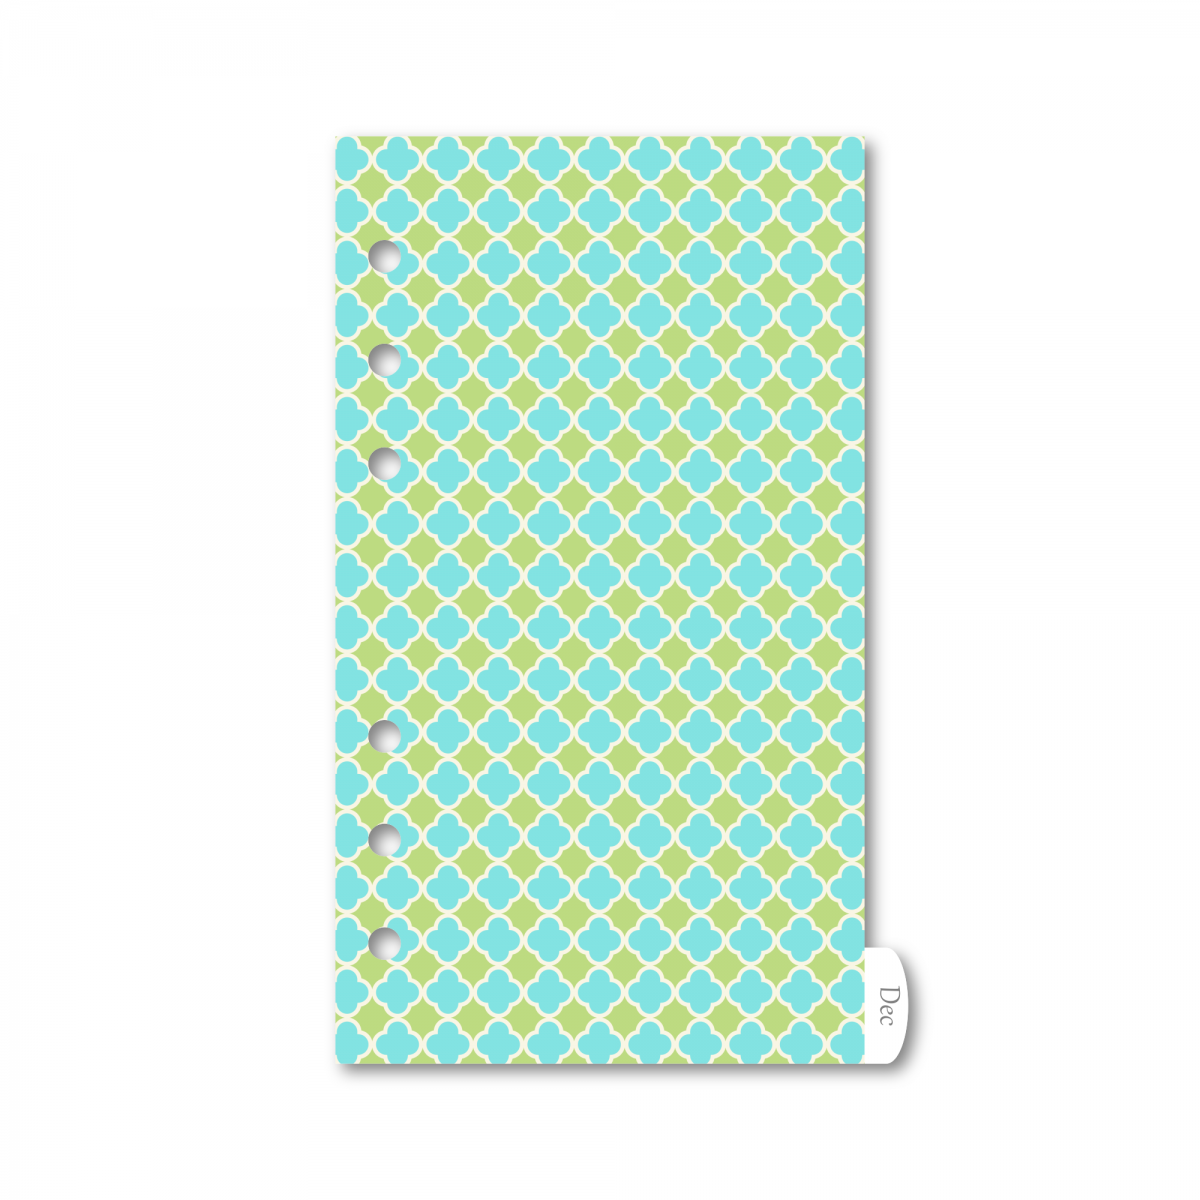 RINGBOUND 12 MONTHS PLASTIC DIVIDERS PERSONAL (SMALL) - GARDEN